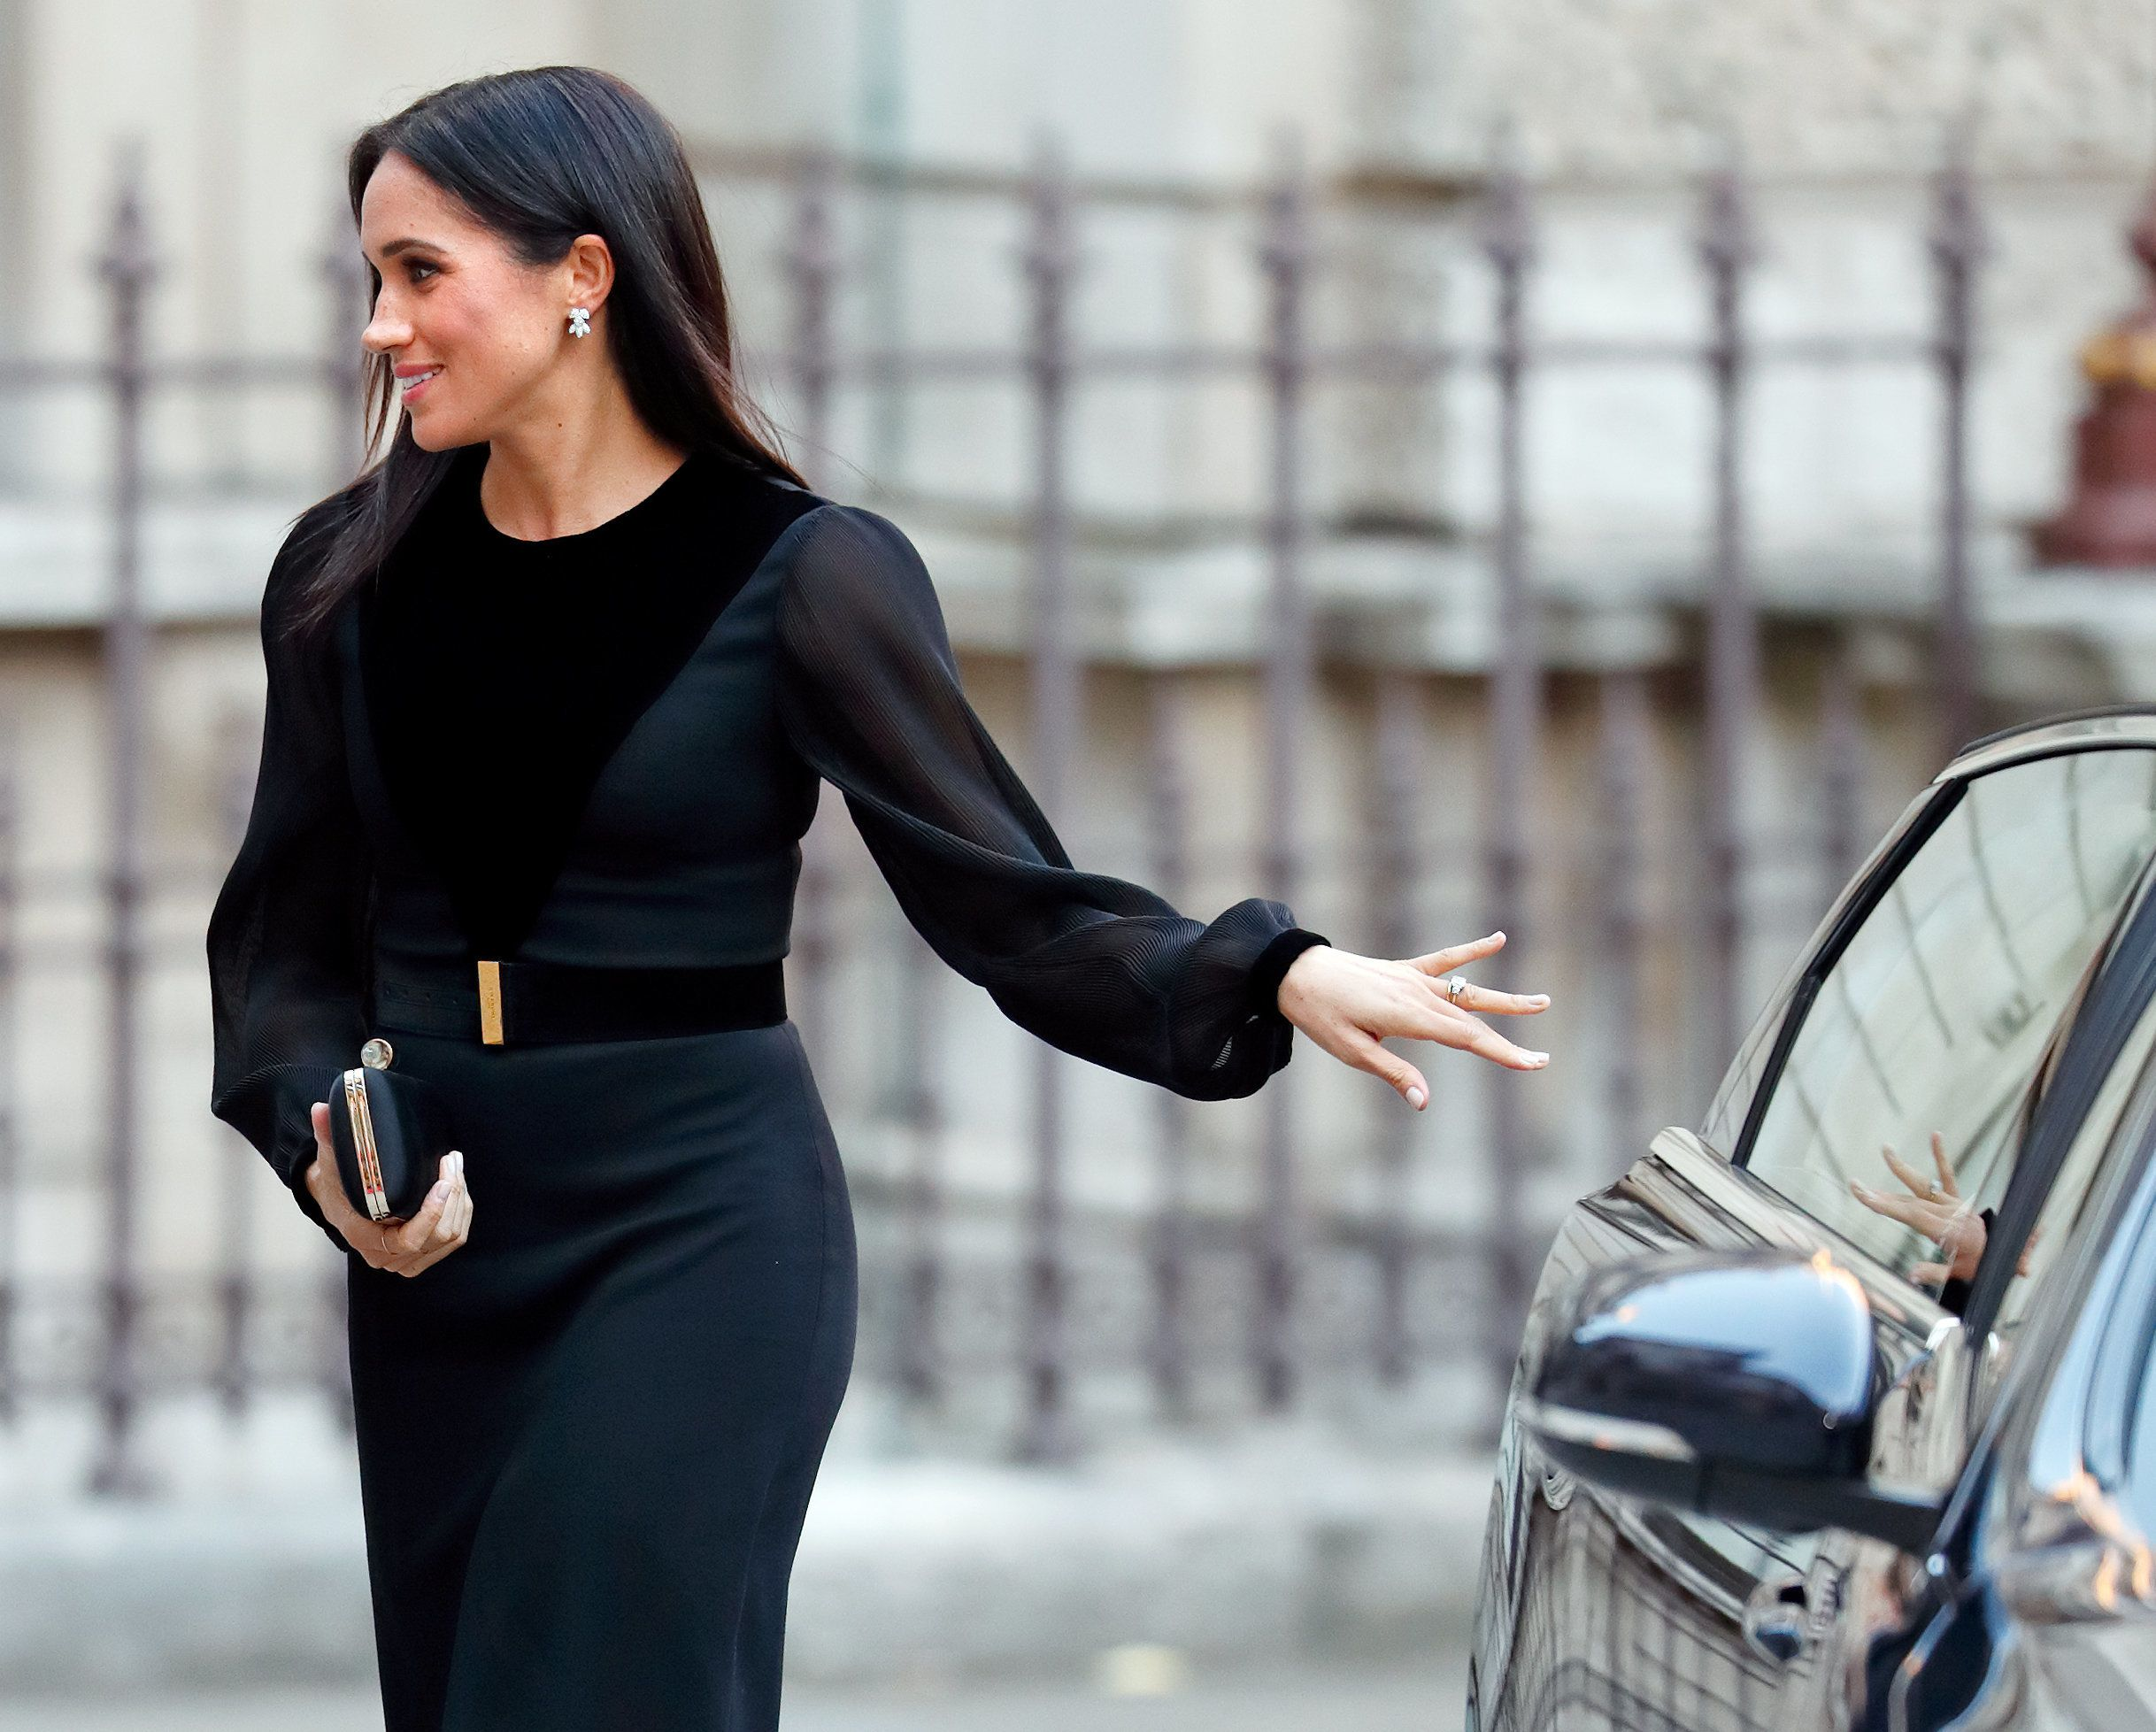 Here's Why People Are Freaking Out That Meghan Markle Closed Her Own